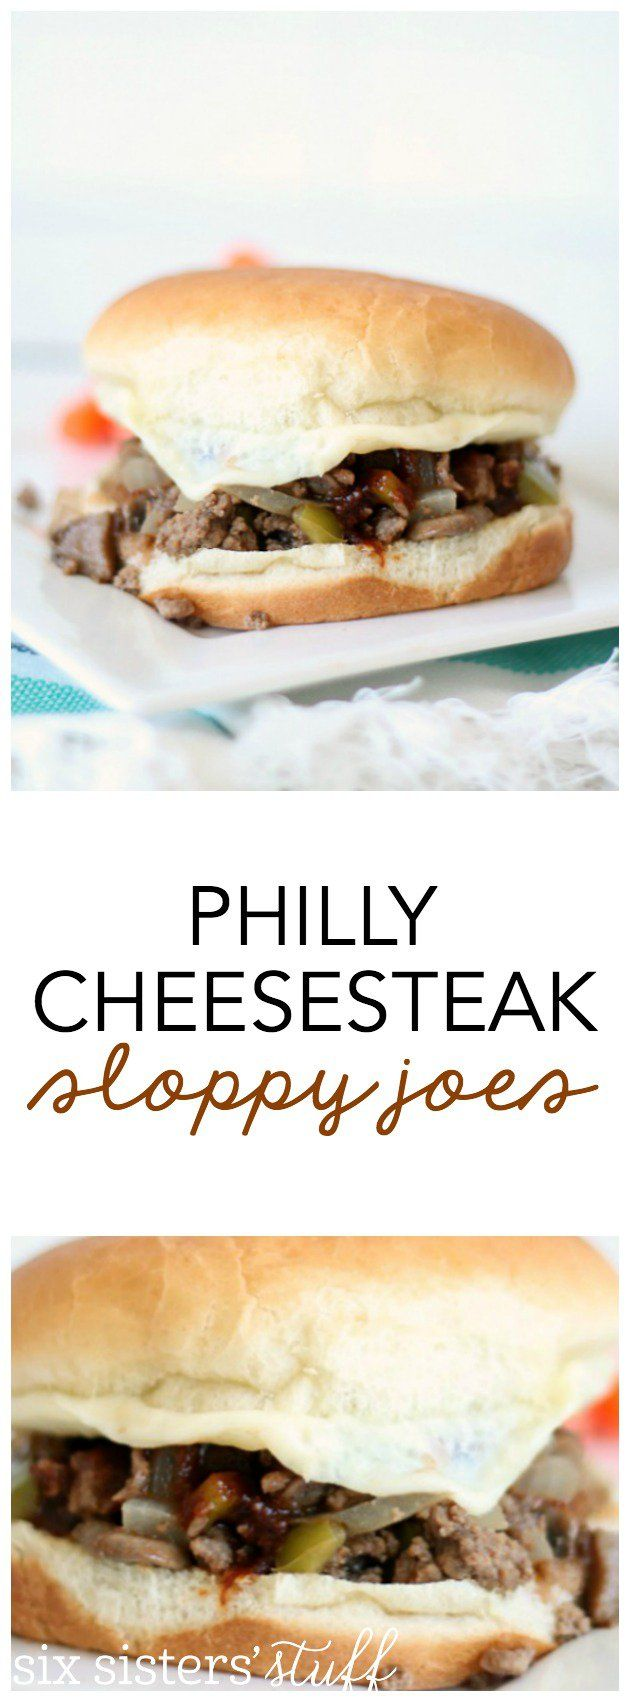 442 best Sandwiches images on Pinterest | Cooking recipes, Brunch ...